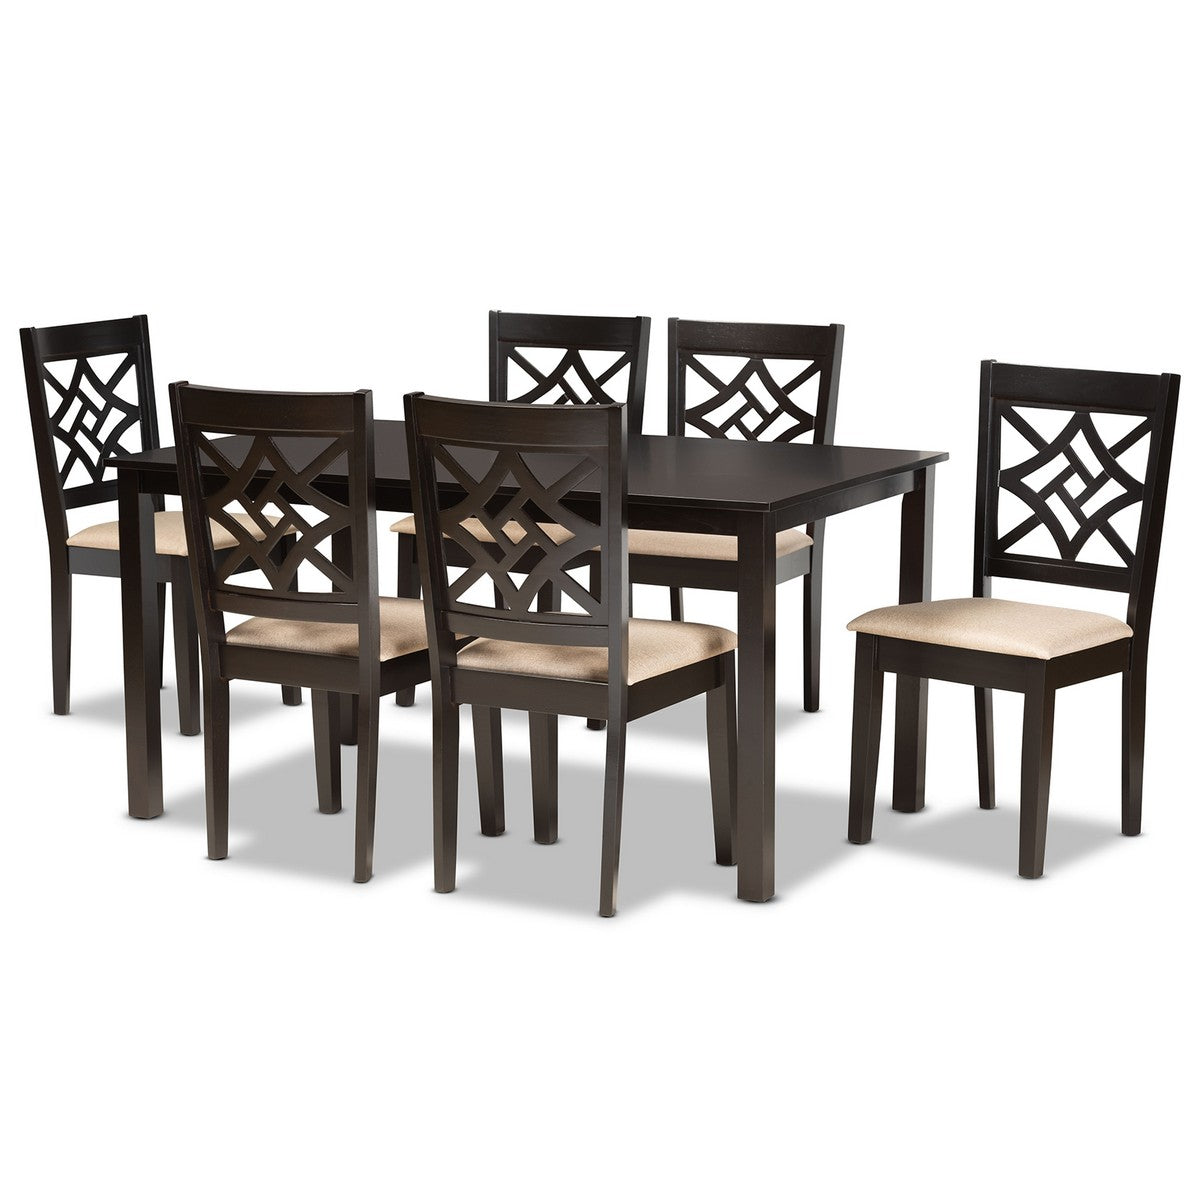 Baxton Studio Nicolette Modern and Contemporary Sand Fabric Upholstered and Dark Brown Finished Wood 7-Piece Dining Set Baxton Studio-Dining Sets-Minimal And Modern - 1